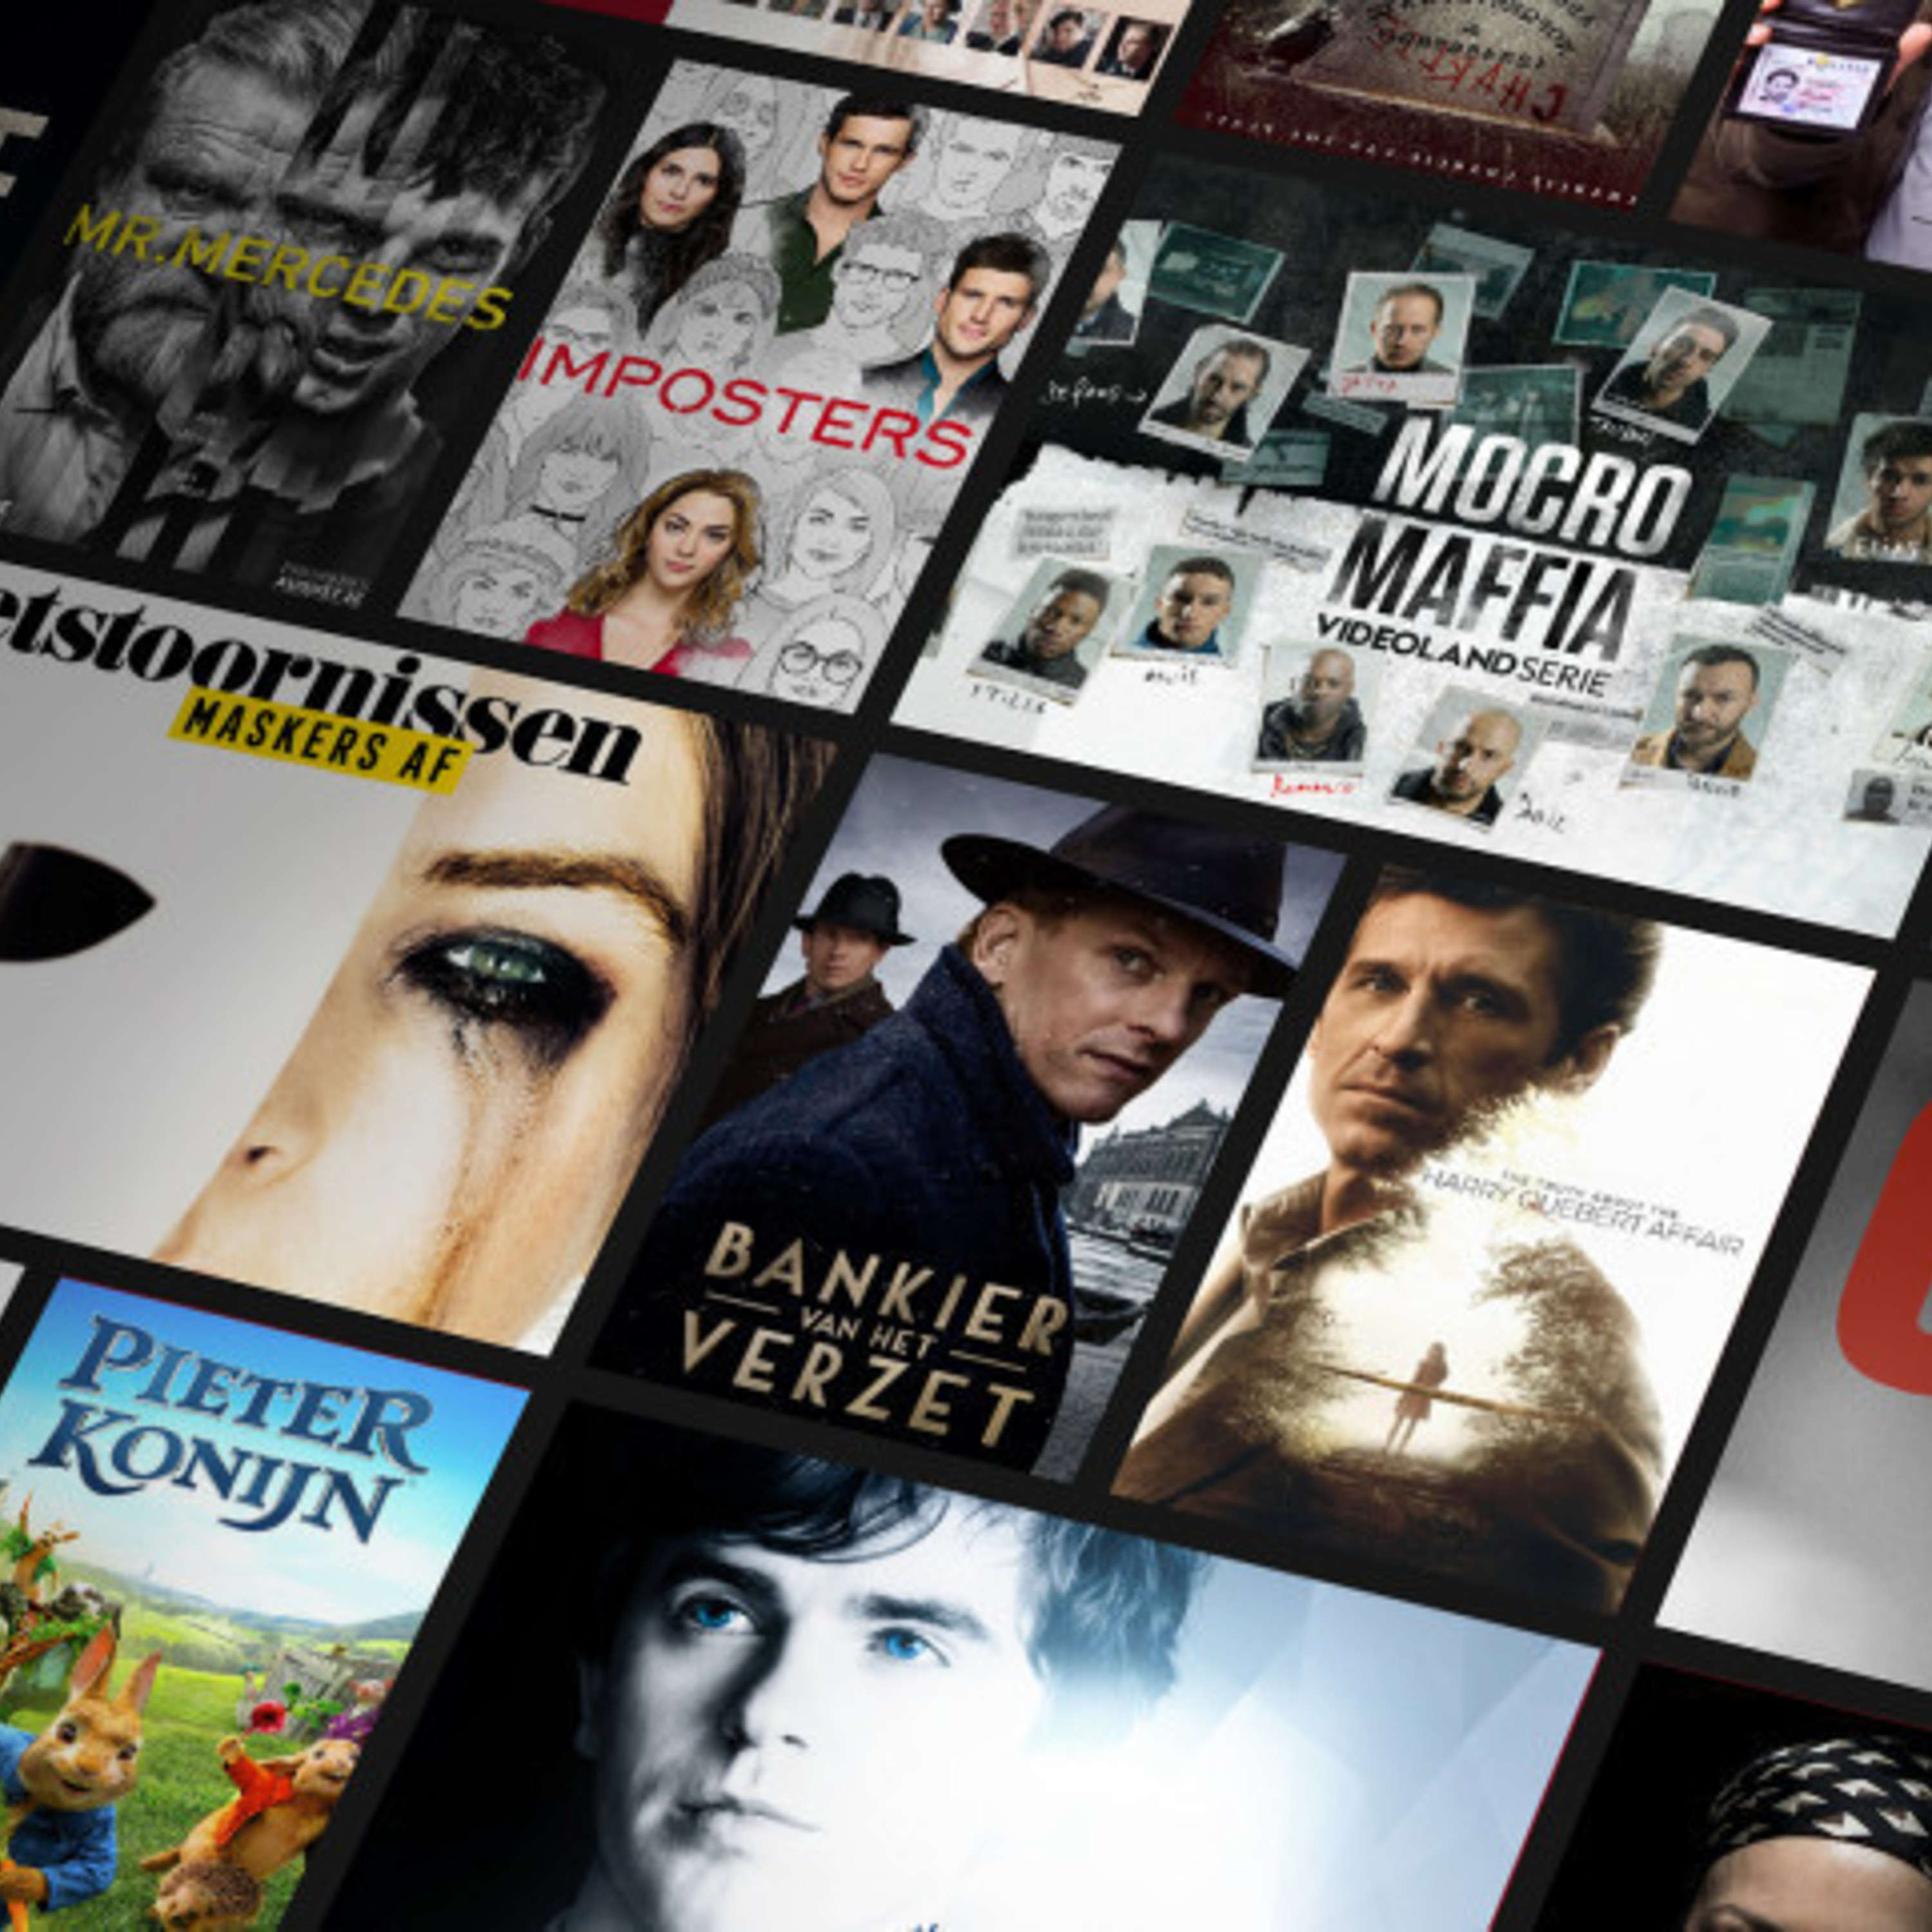 Optimalisatie van video-on-demand (Videoland)